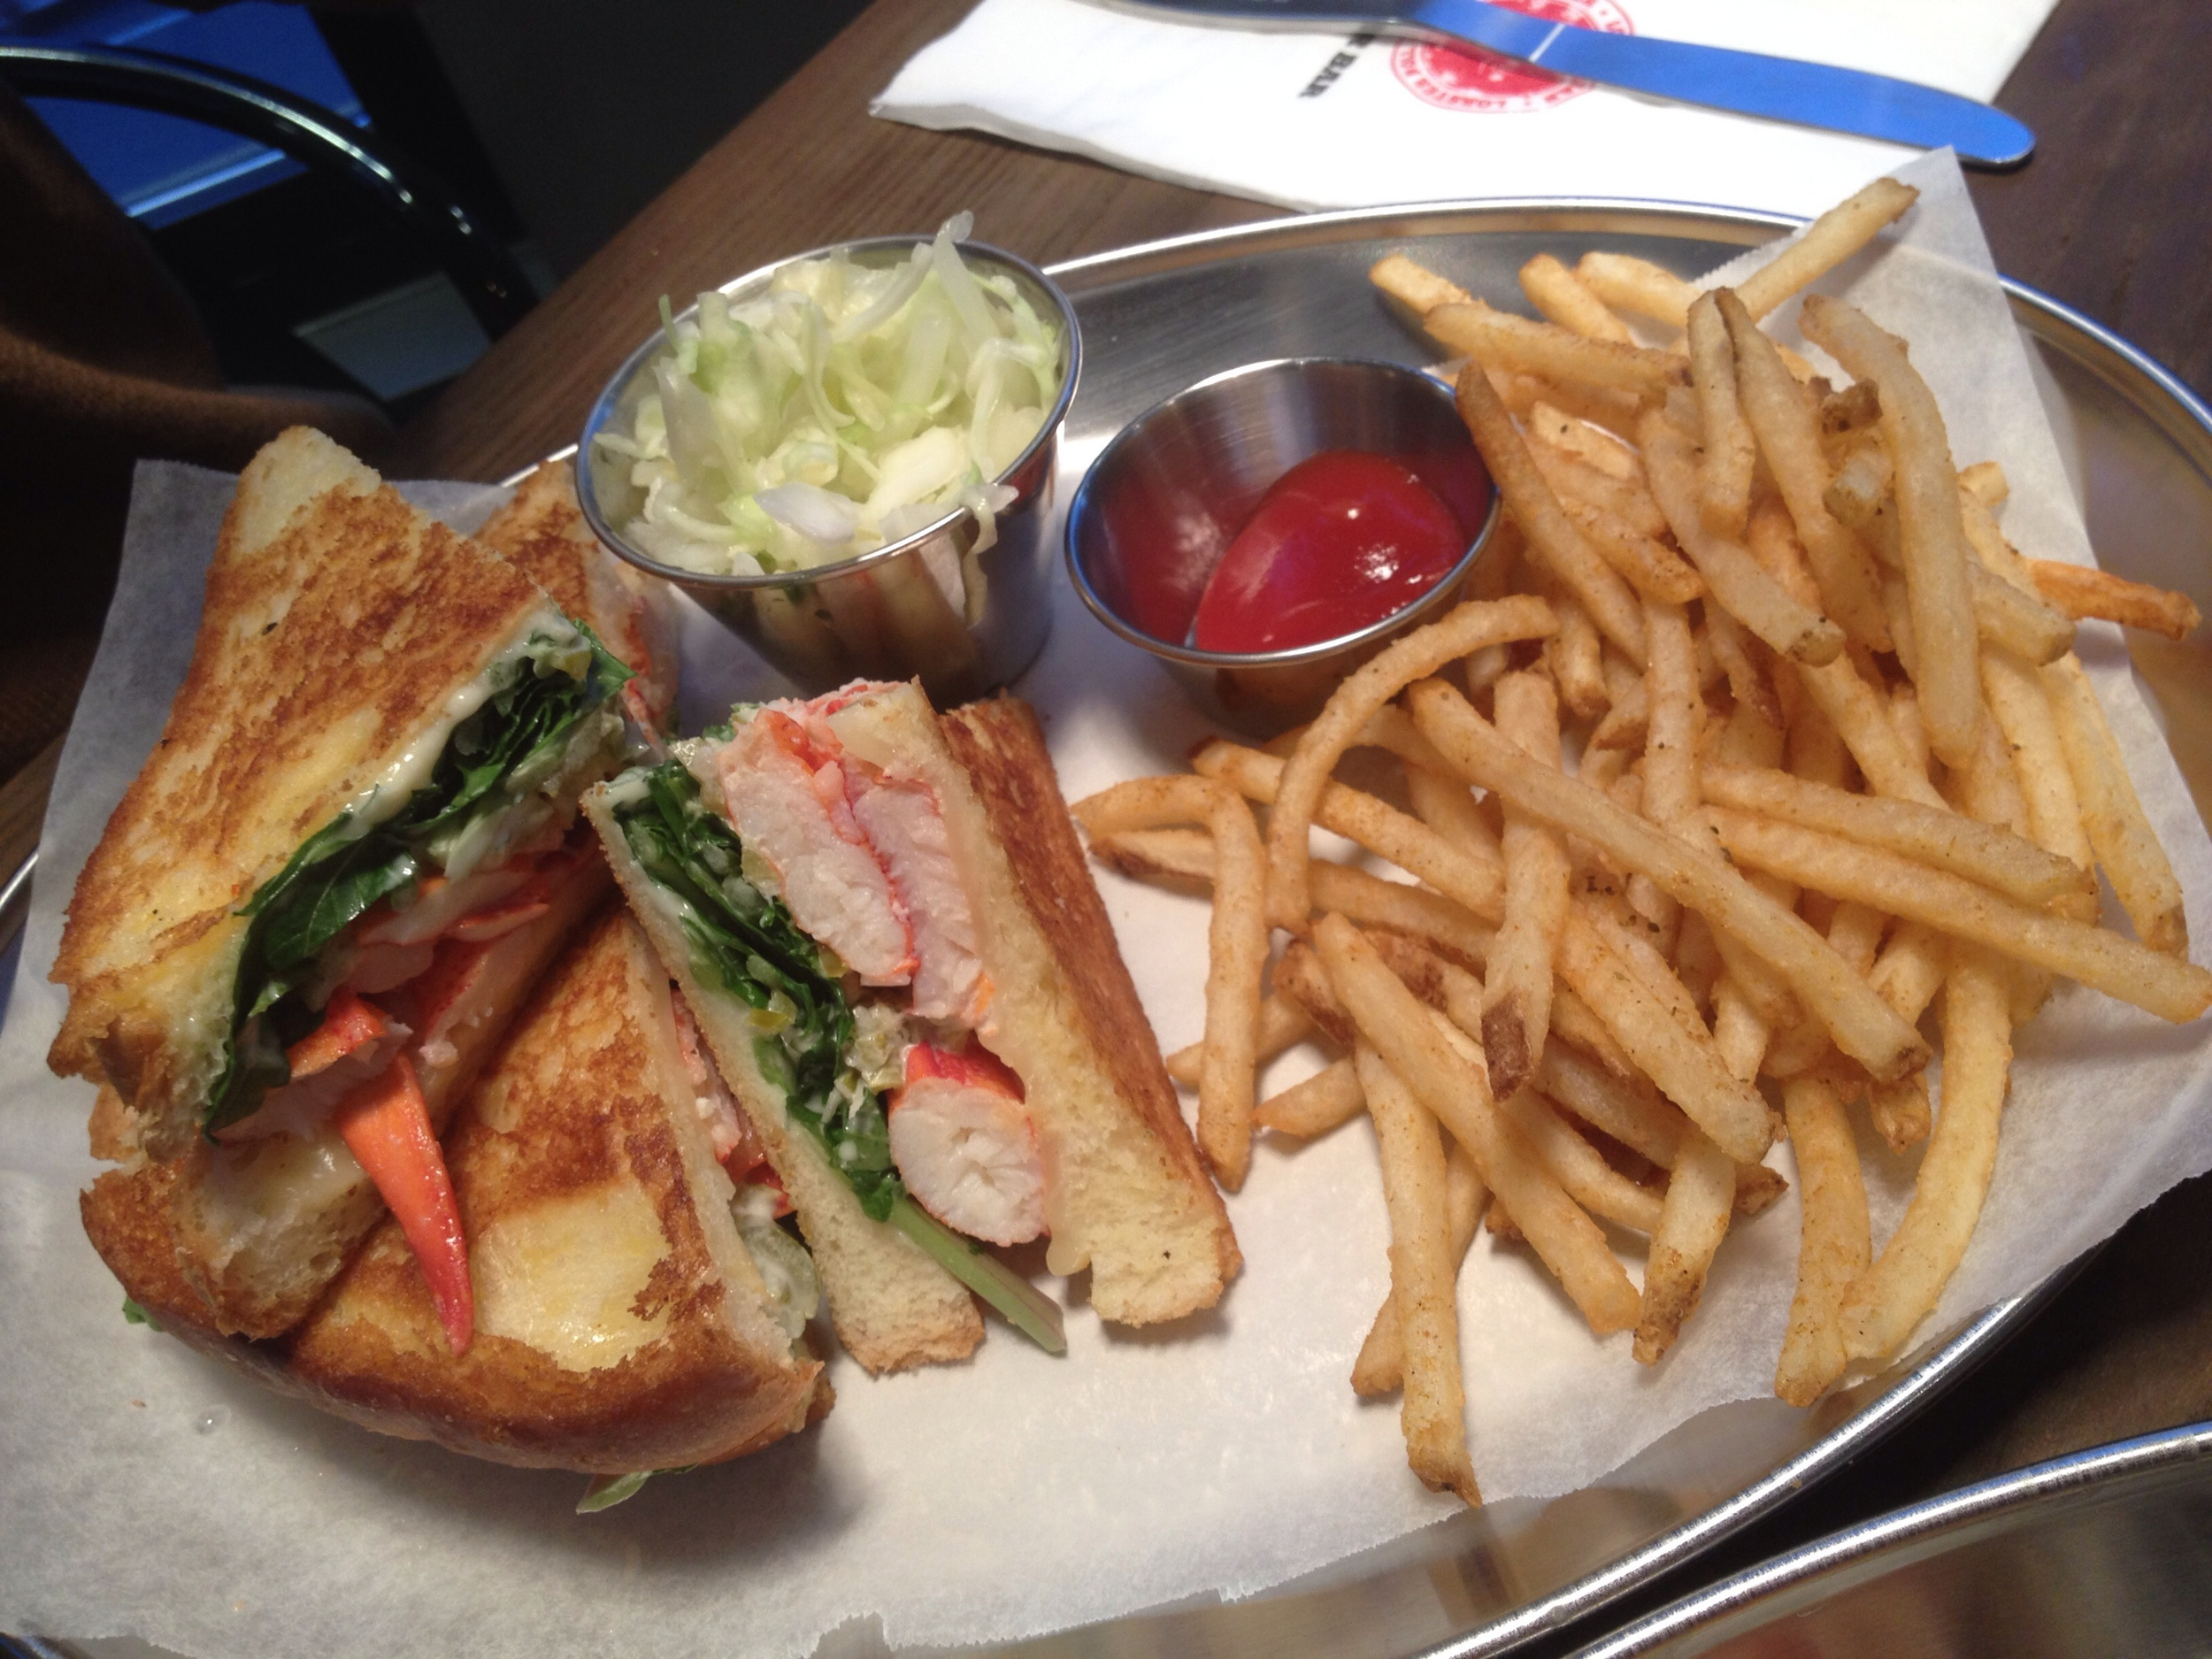 "Lobster Grilled Cheese - ""Lobster chunks, american and gouda cheese, arugula, lobster bar seasoning, served with fries and salad""  Delicious - make sure to eat this when it's served hot right away. The crunchiness of the toasted bread and arugula contrasts so nicely with the soft lobster meat and gooey cheese."